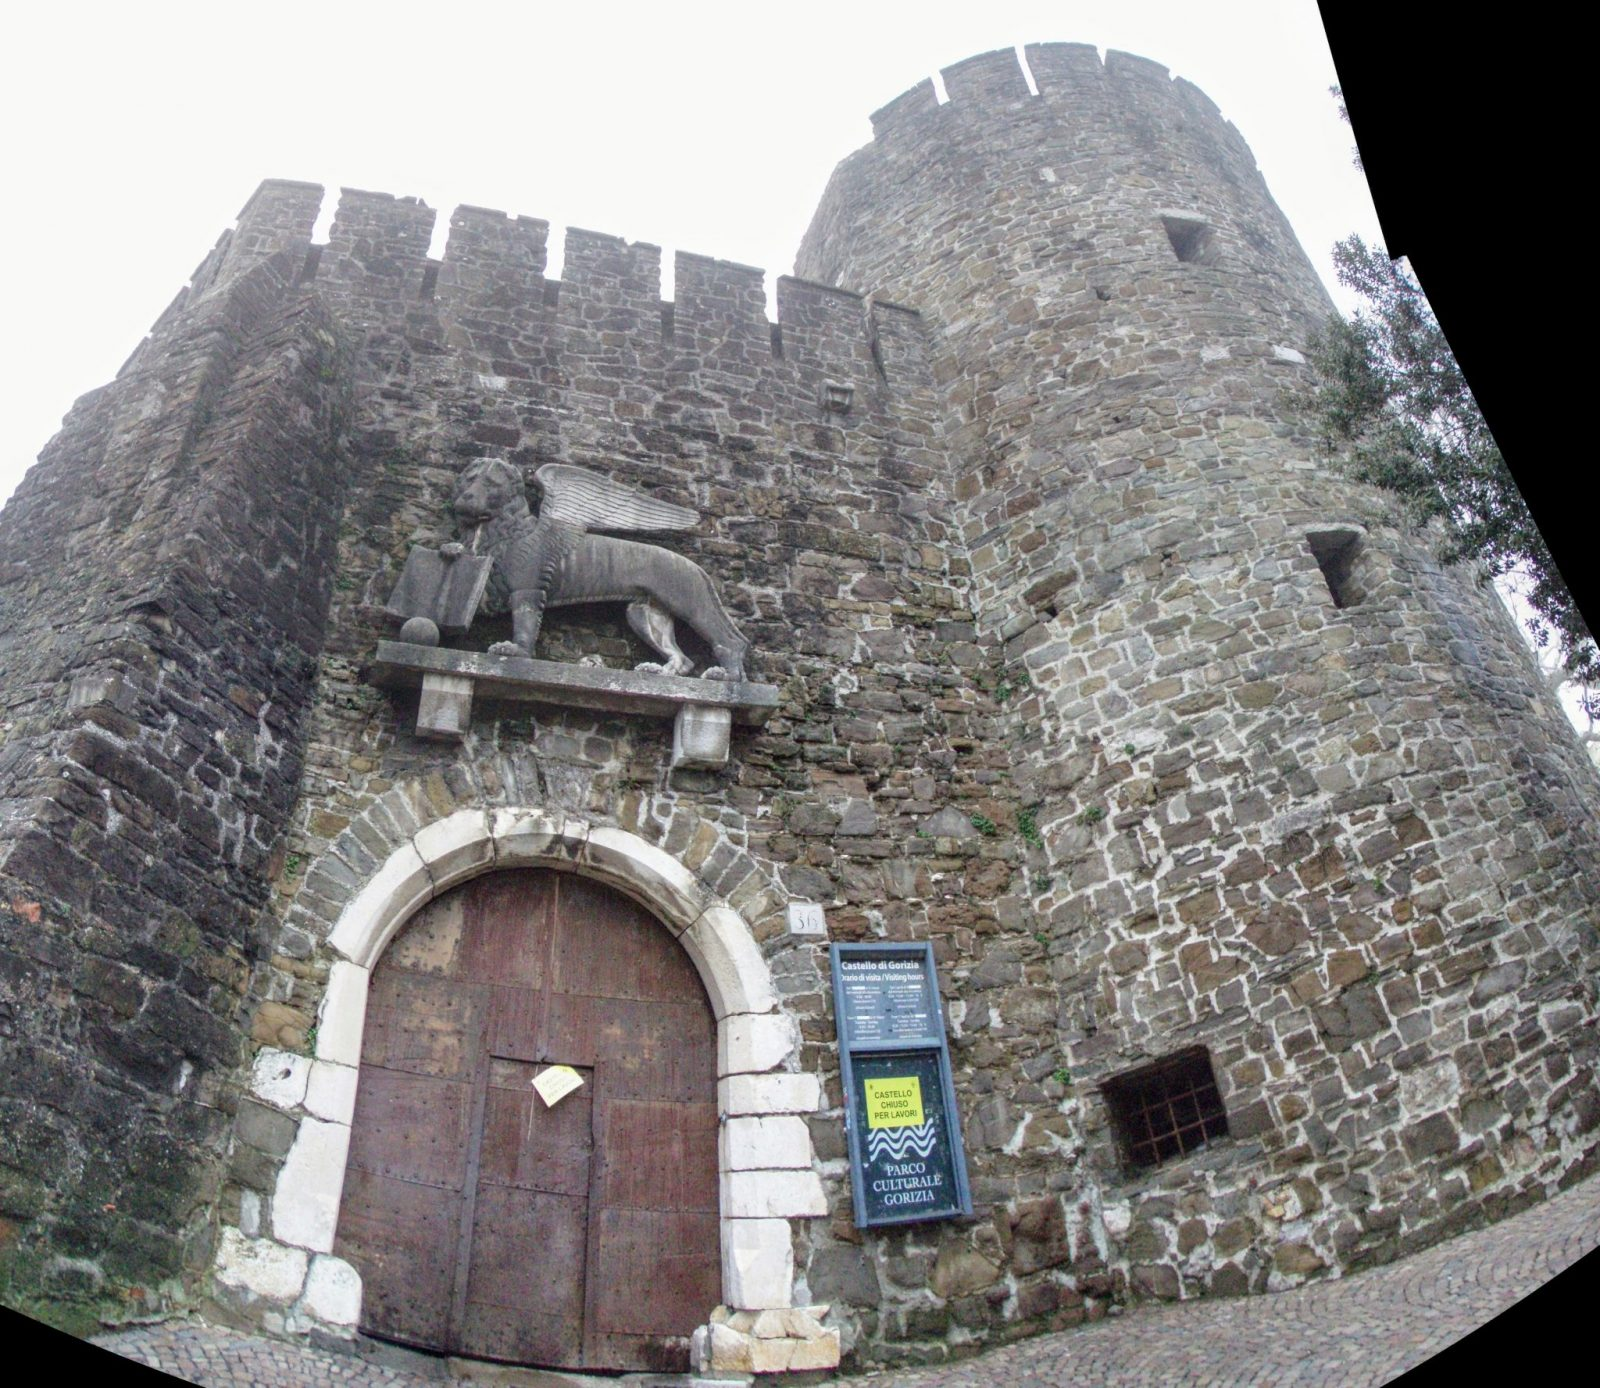 castle entrance gate with statue on the gate